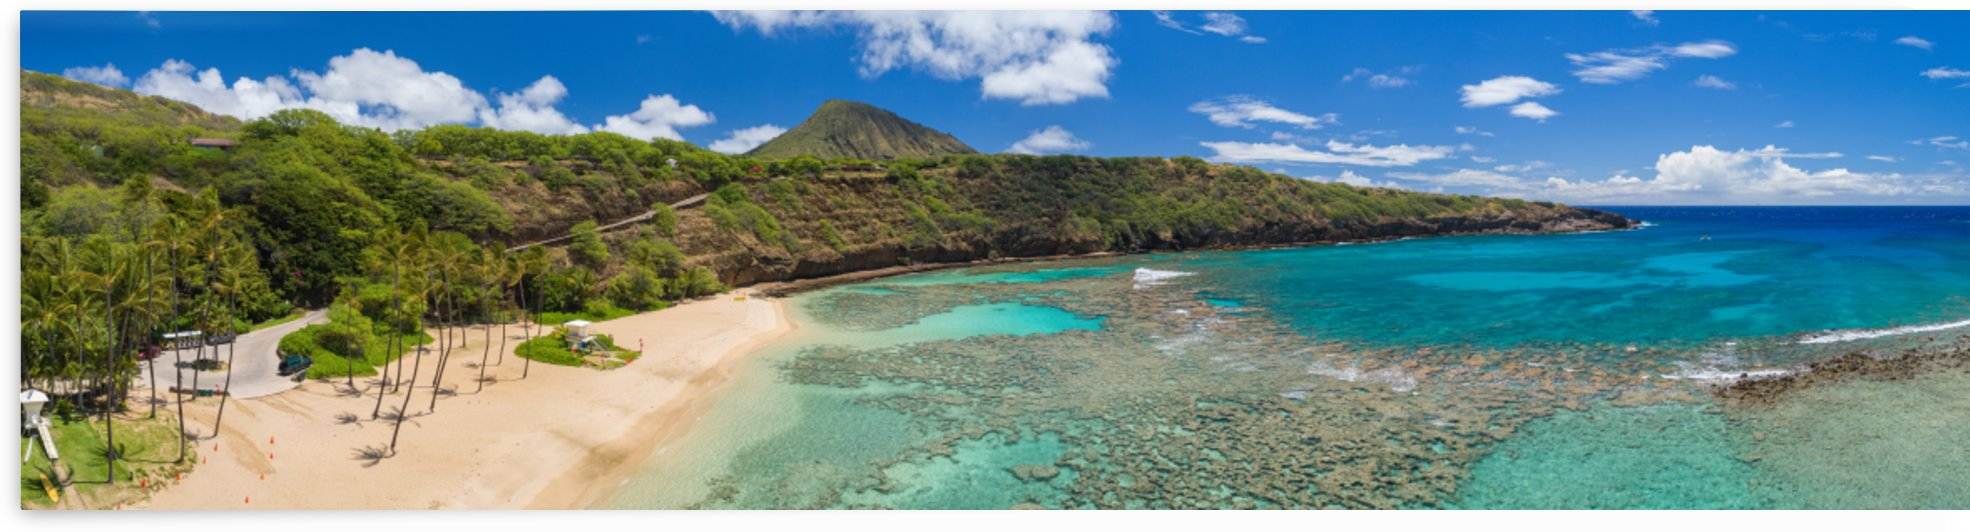 Hanauma Bay 2 by Dave Tonnes